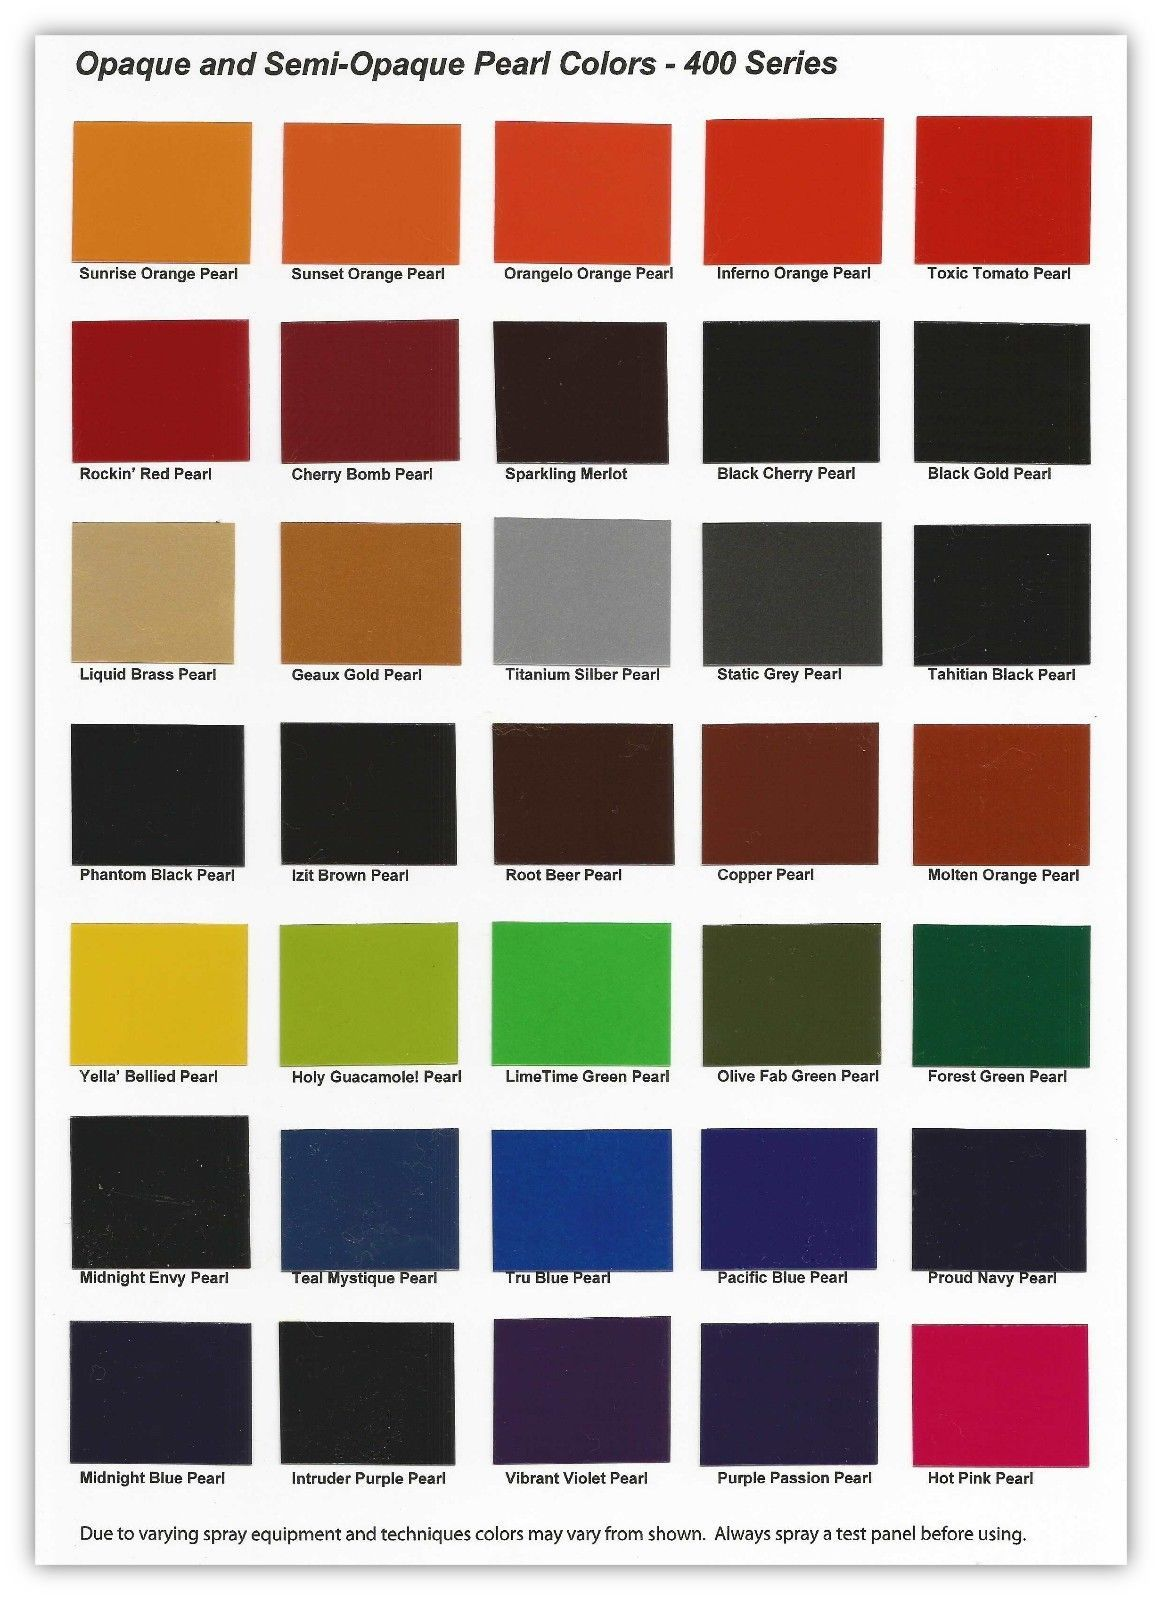 Colour car metallic - Urekem 400 Series Color Chart Color Card Of Opaque And Semi Opaque Pearls